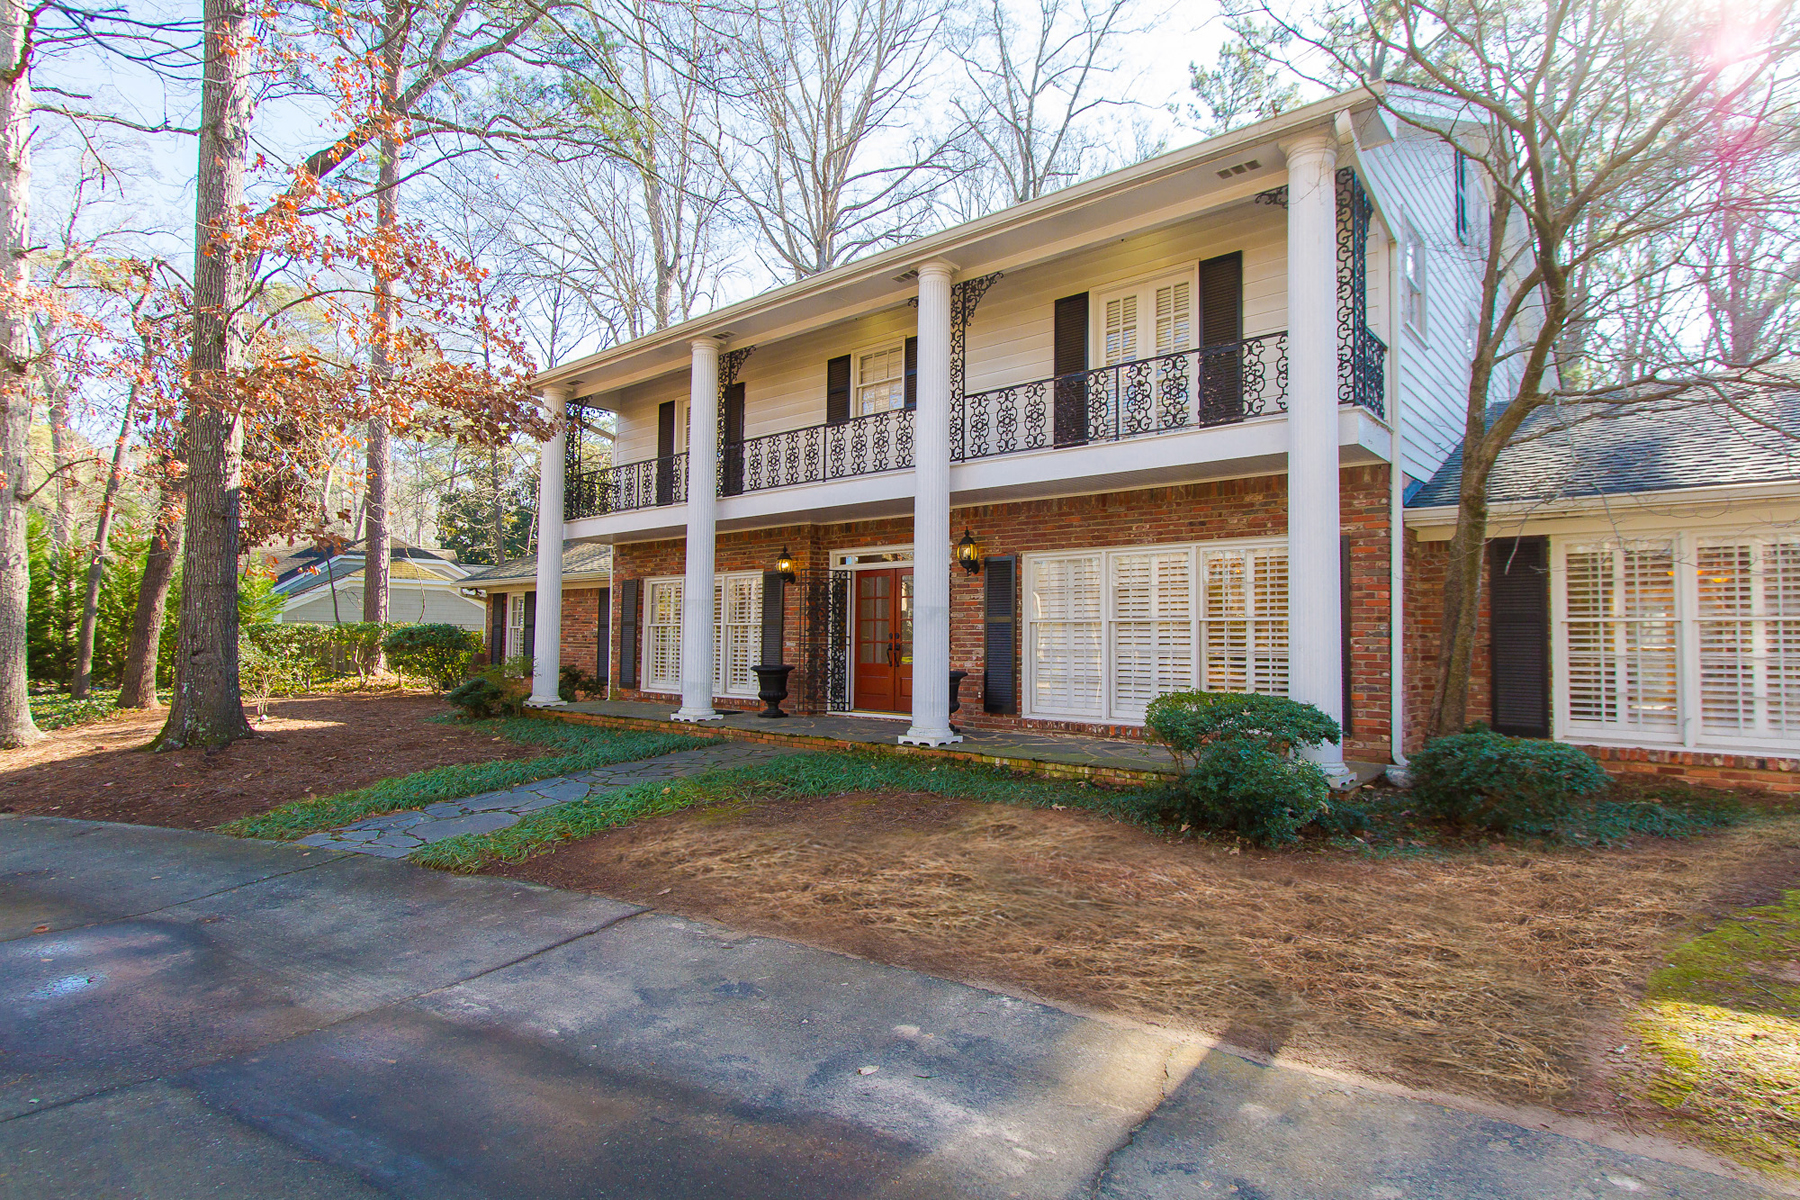 Single Family Home for Sale at Buckhead Townhome Property 1190 West Paces Ferry Rd Atlanta, Georgia 30327 United States